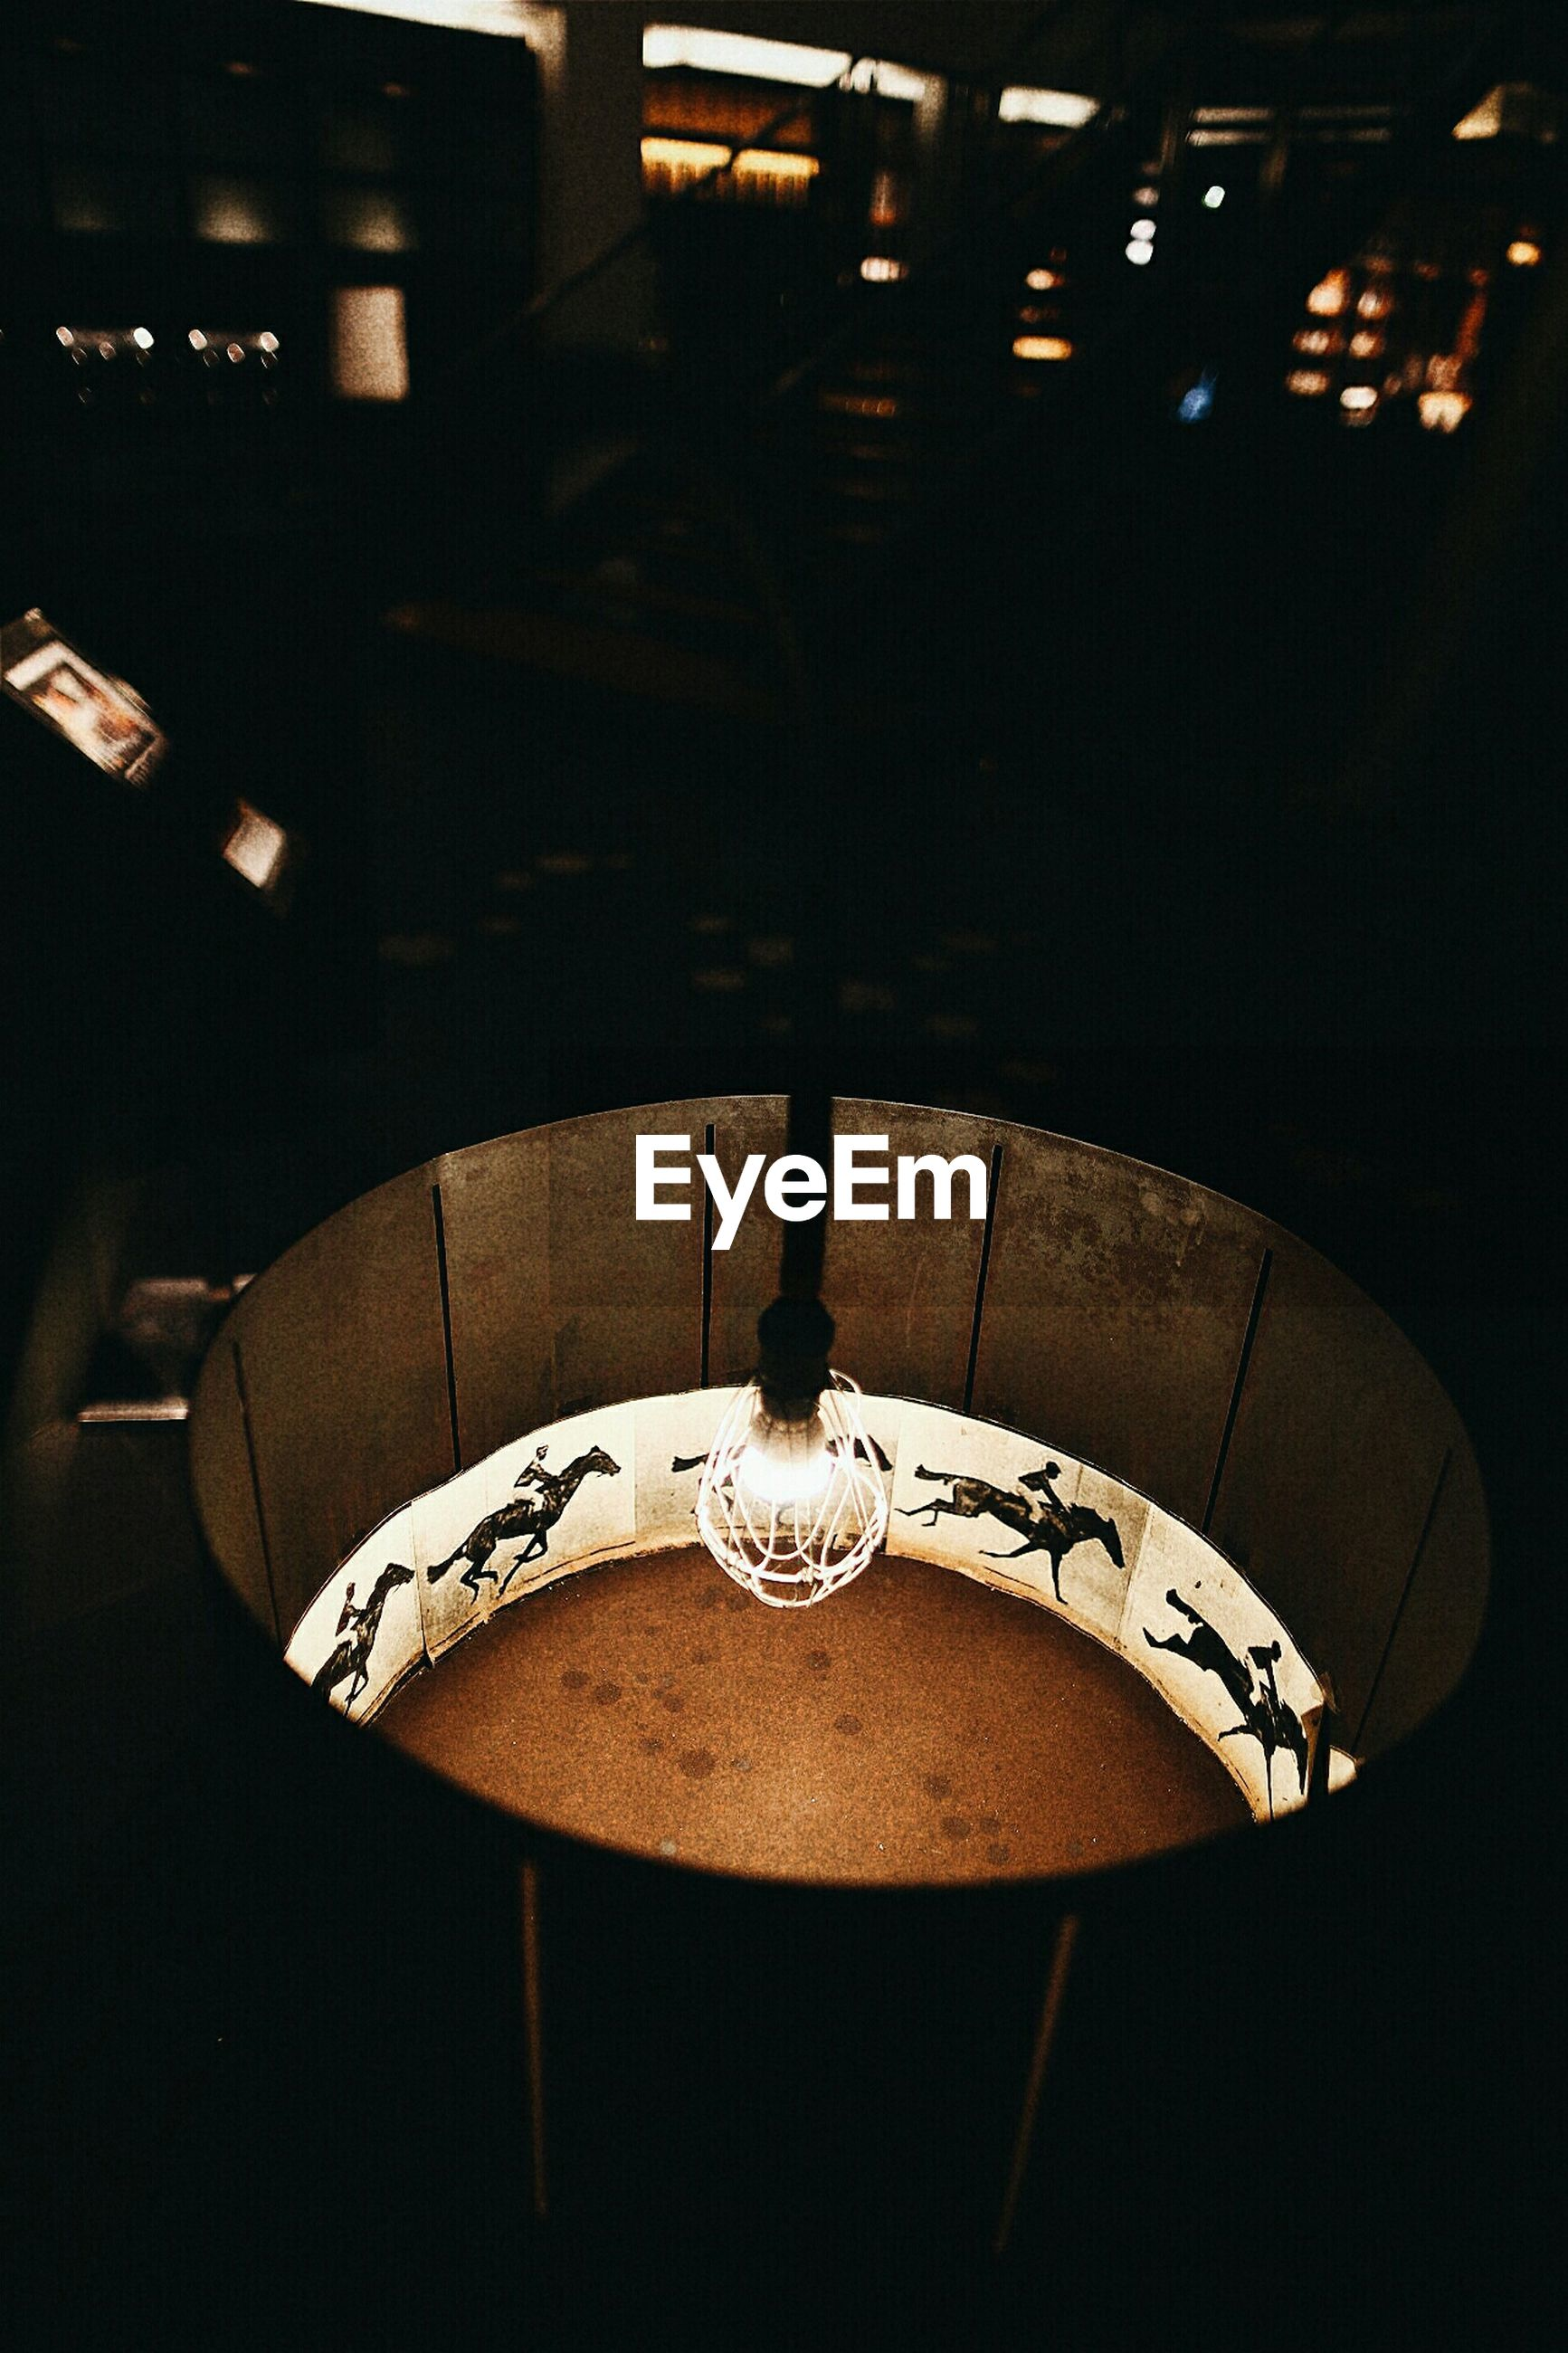 indoors, illuminated, lighting equipment, technology, electricity, close-up, electric light, night, no people, glowing, communication, table, light - natural phenomenon, electric lamp, light bulb, lit, high angle view, circle, dark, ceiling